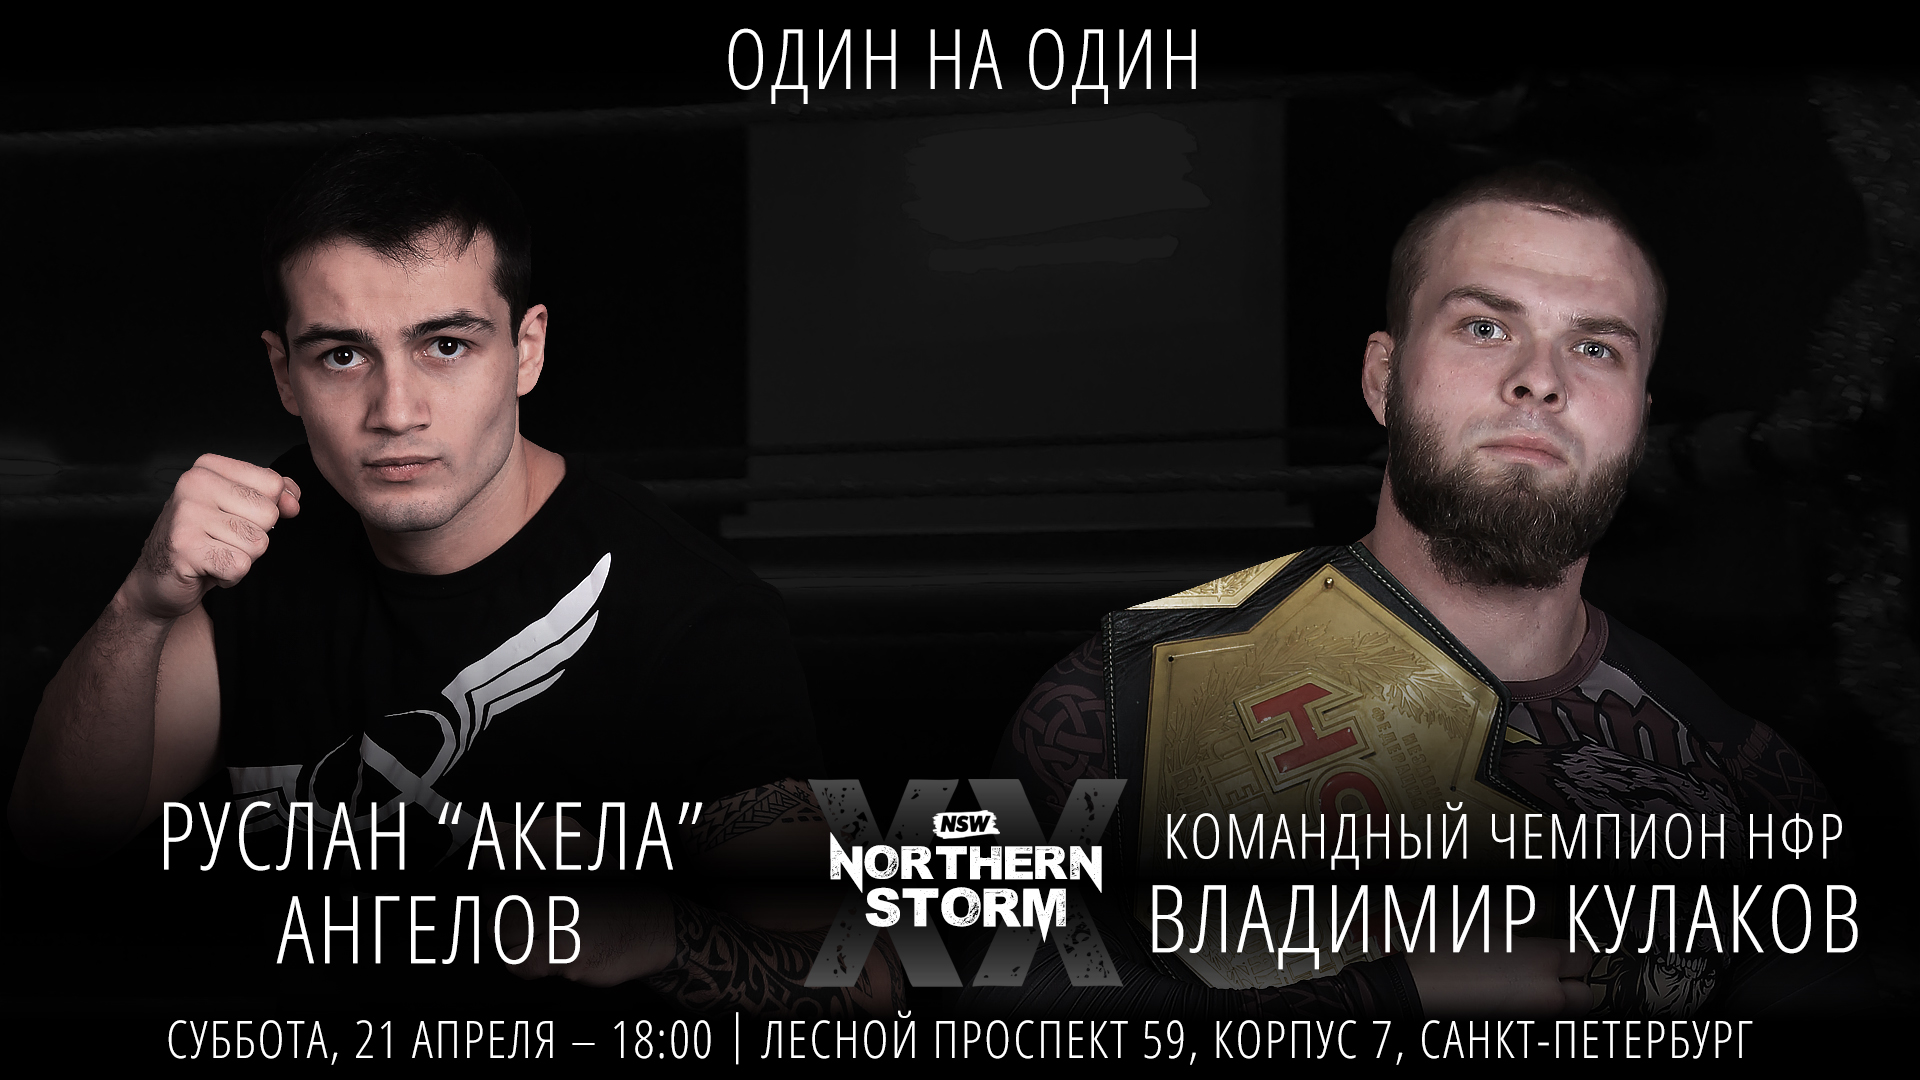 NSW Northern Storm XX: Владимир Кулаков против Руслана «Акелы» Ангелова